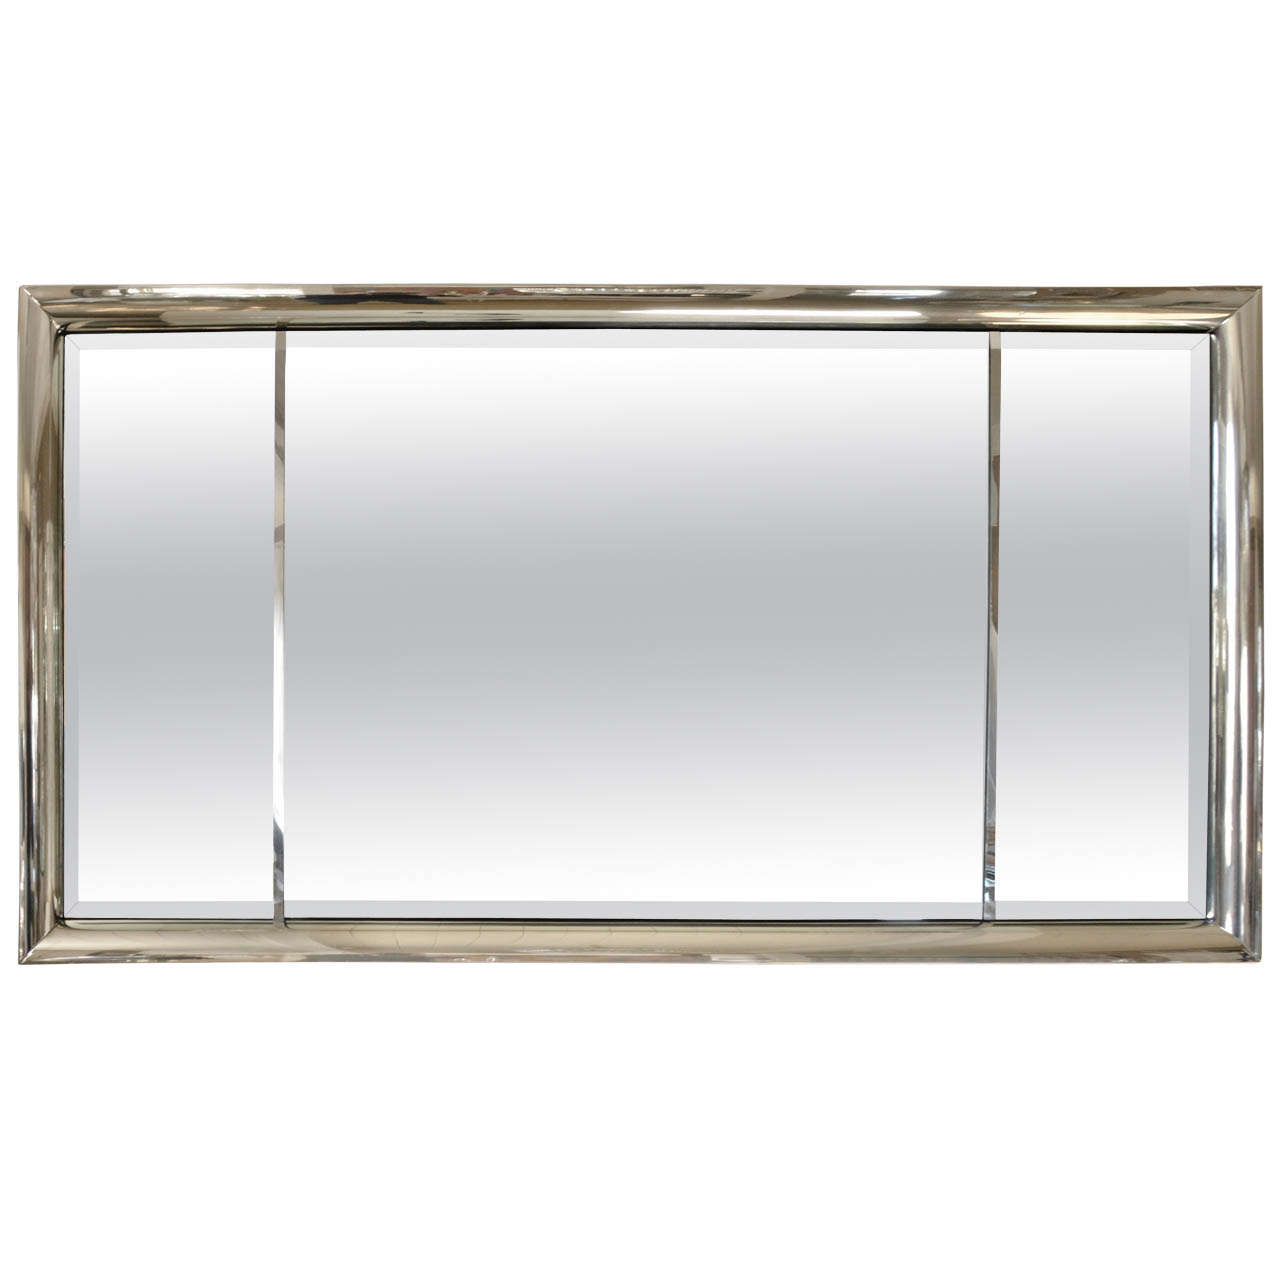 Chrome framed beveled glass mirror by mastercraft at 1stdibs for Window wall mirror